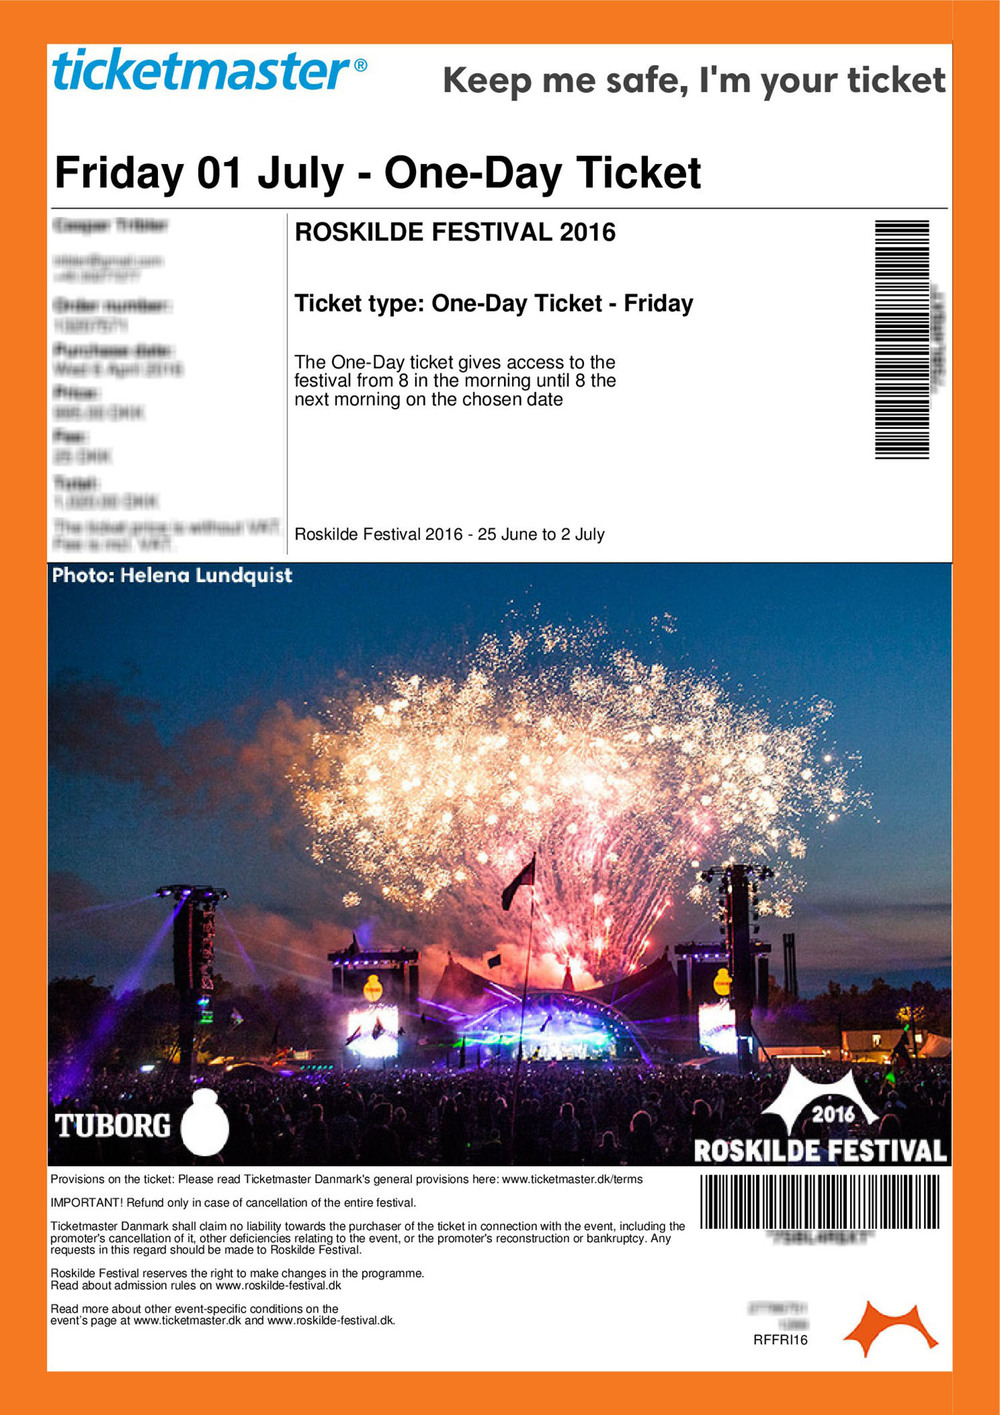 Roskilde Festival 2016 Friday ticket